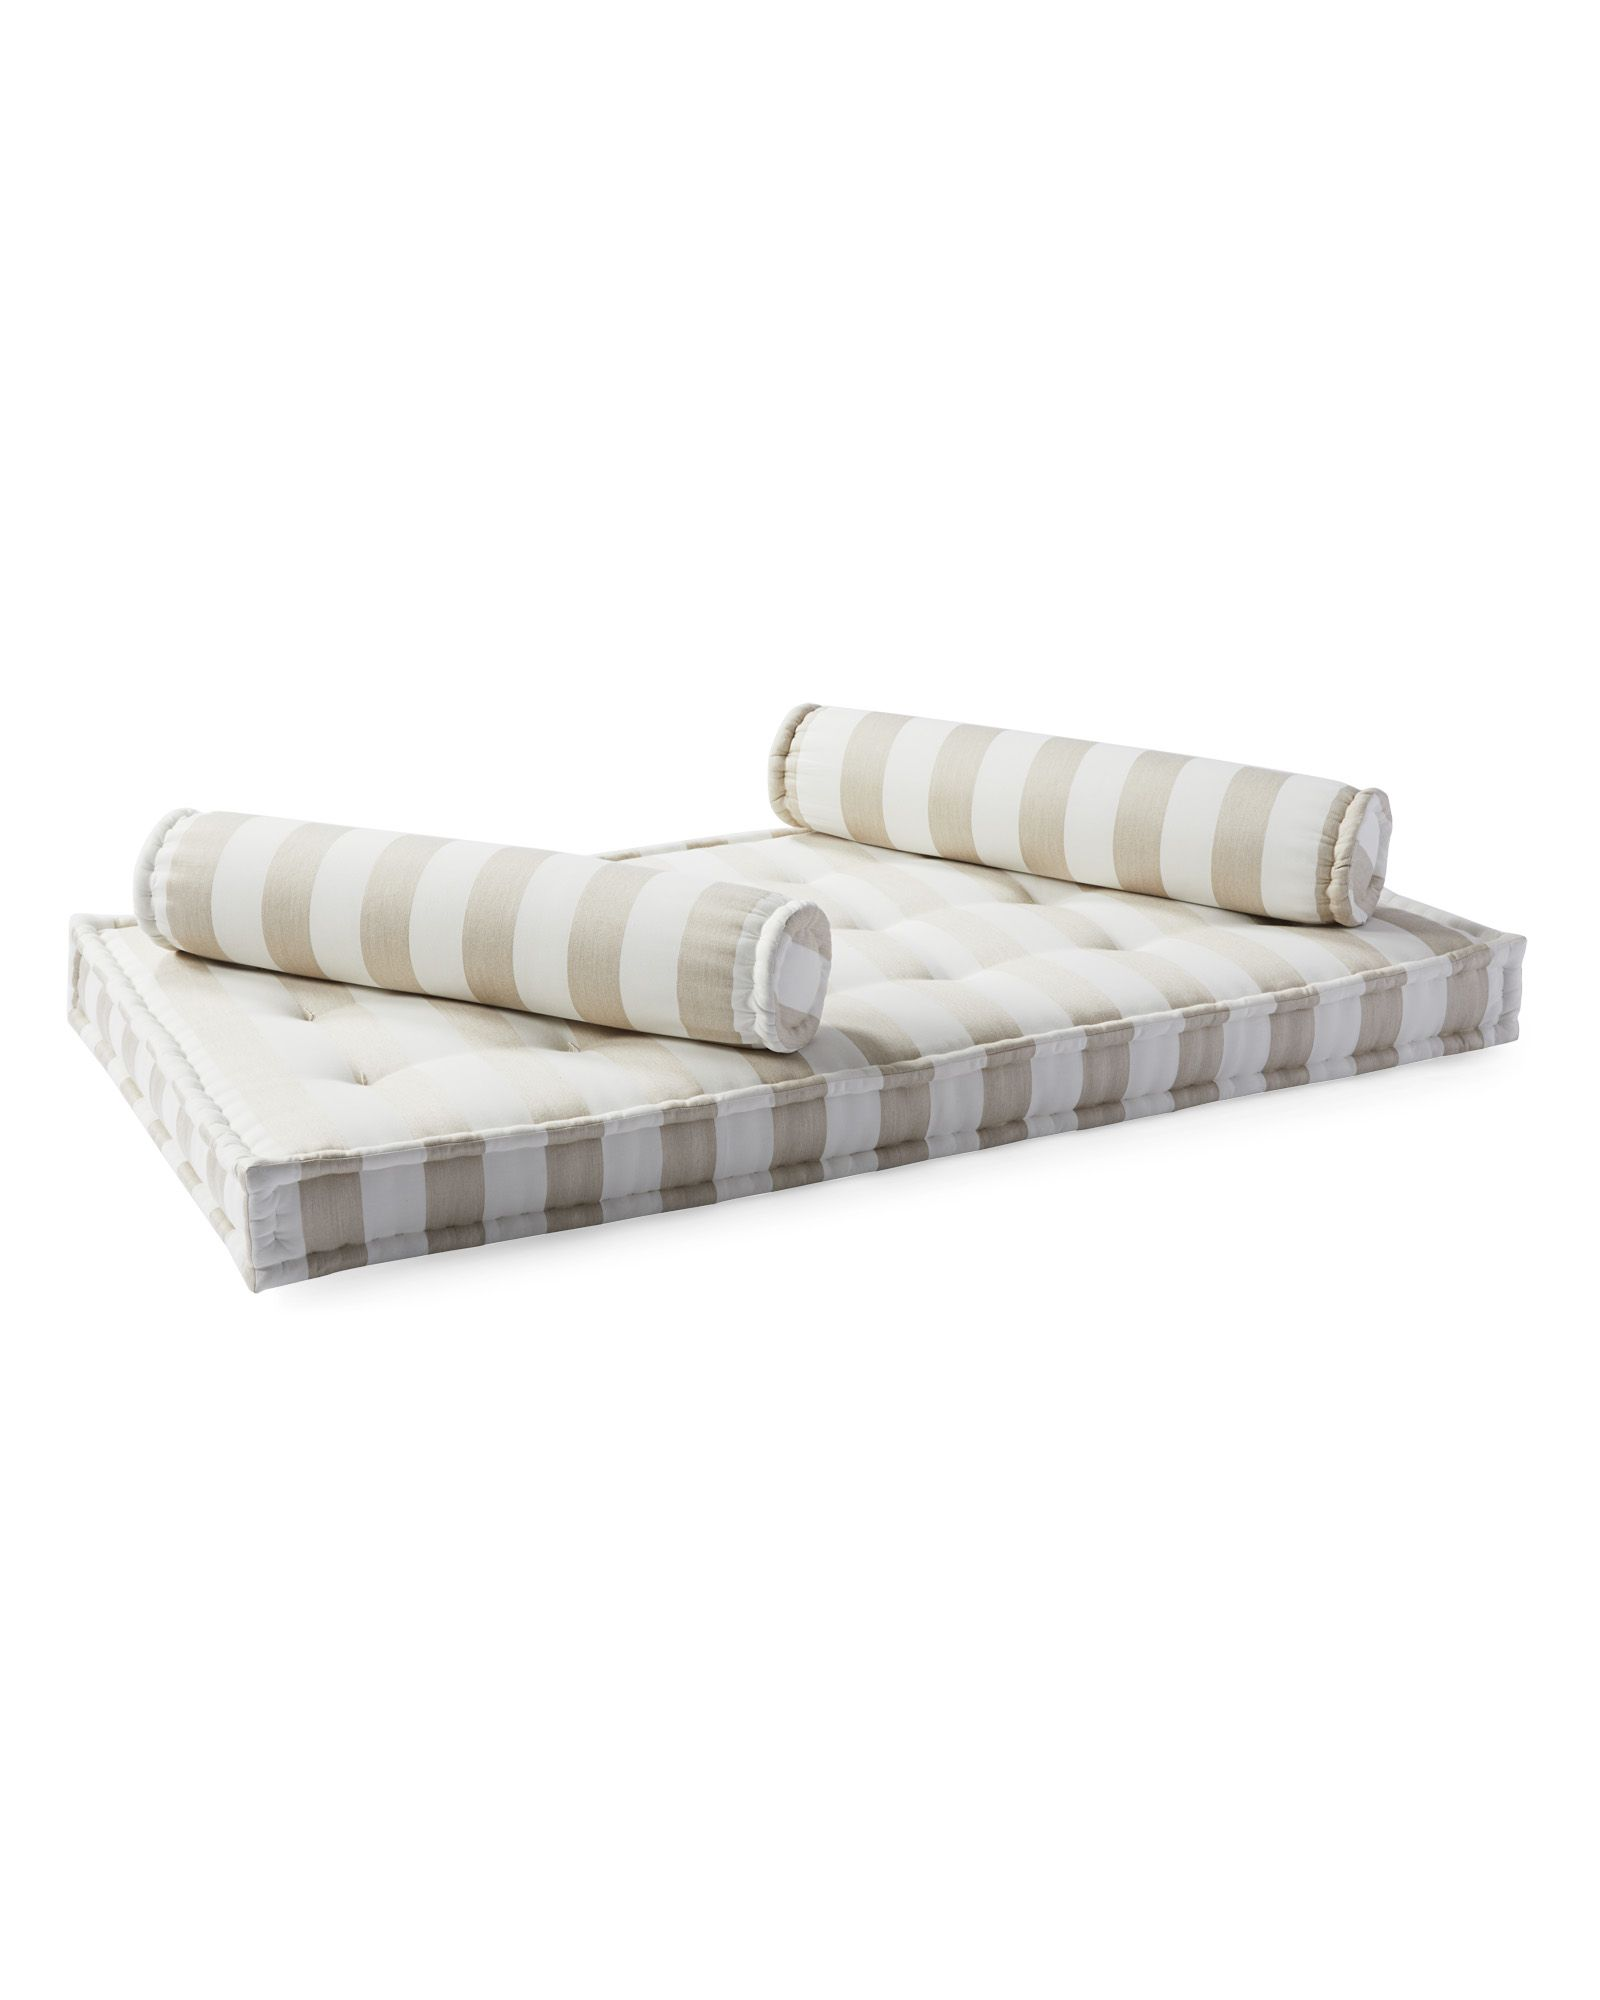 - Outdoor Daybed Mattress The Modern Classic House Daybed